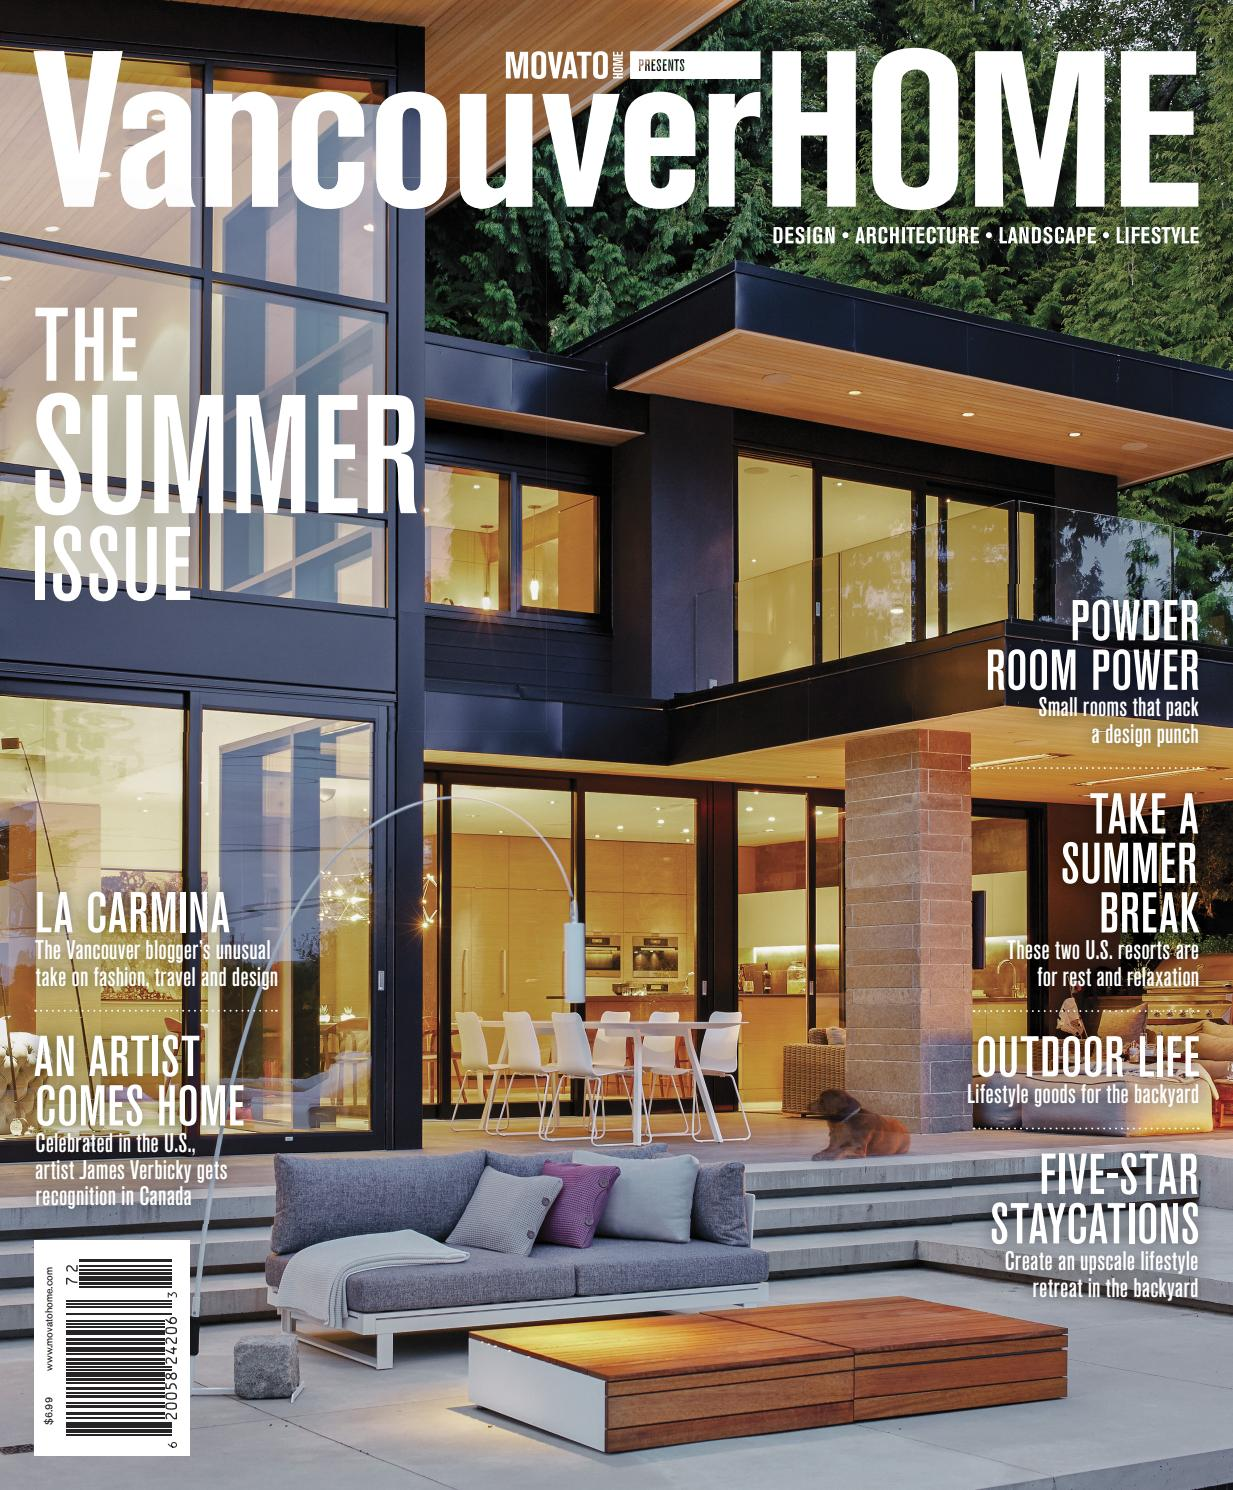 vancouver home summer by movatohome design landscape lifestyle issuu